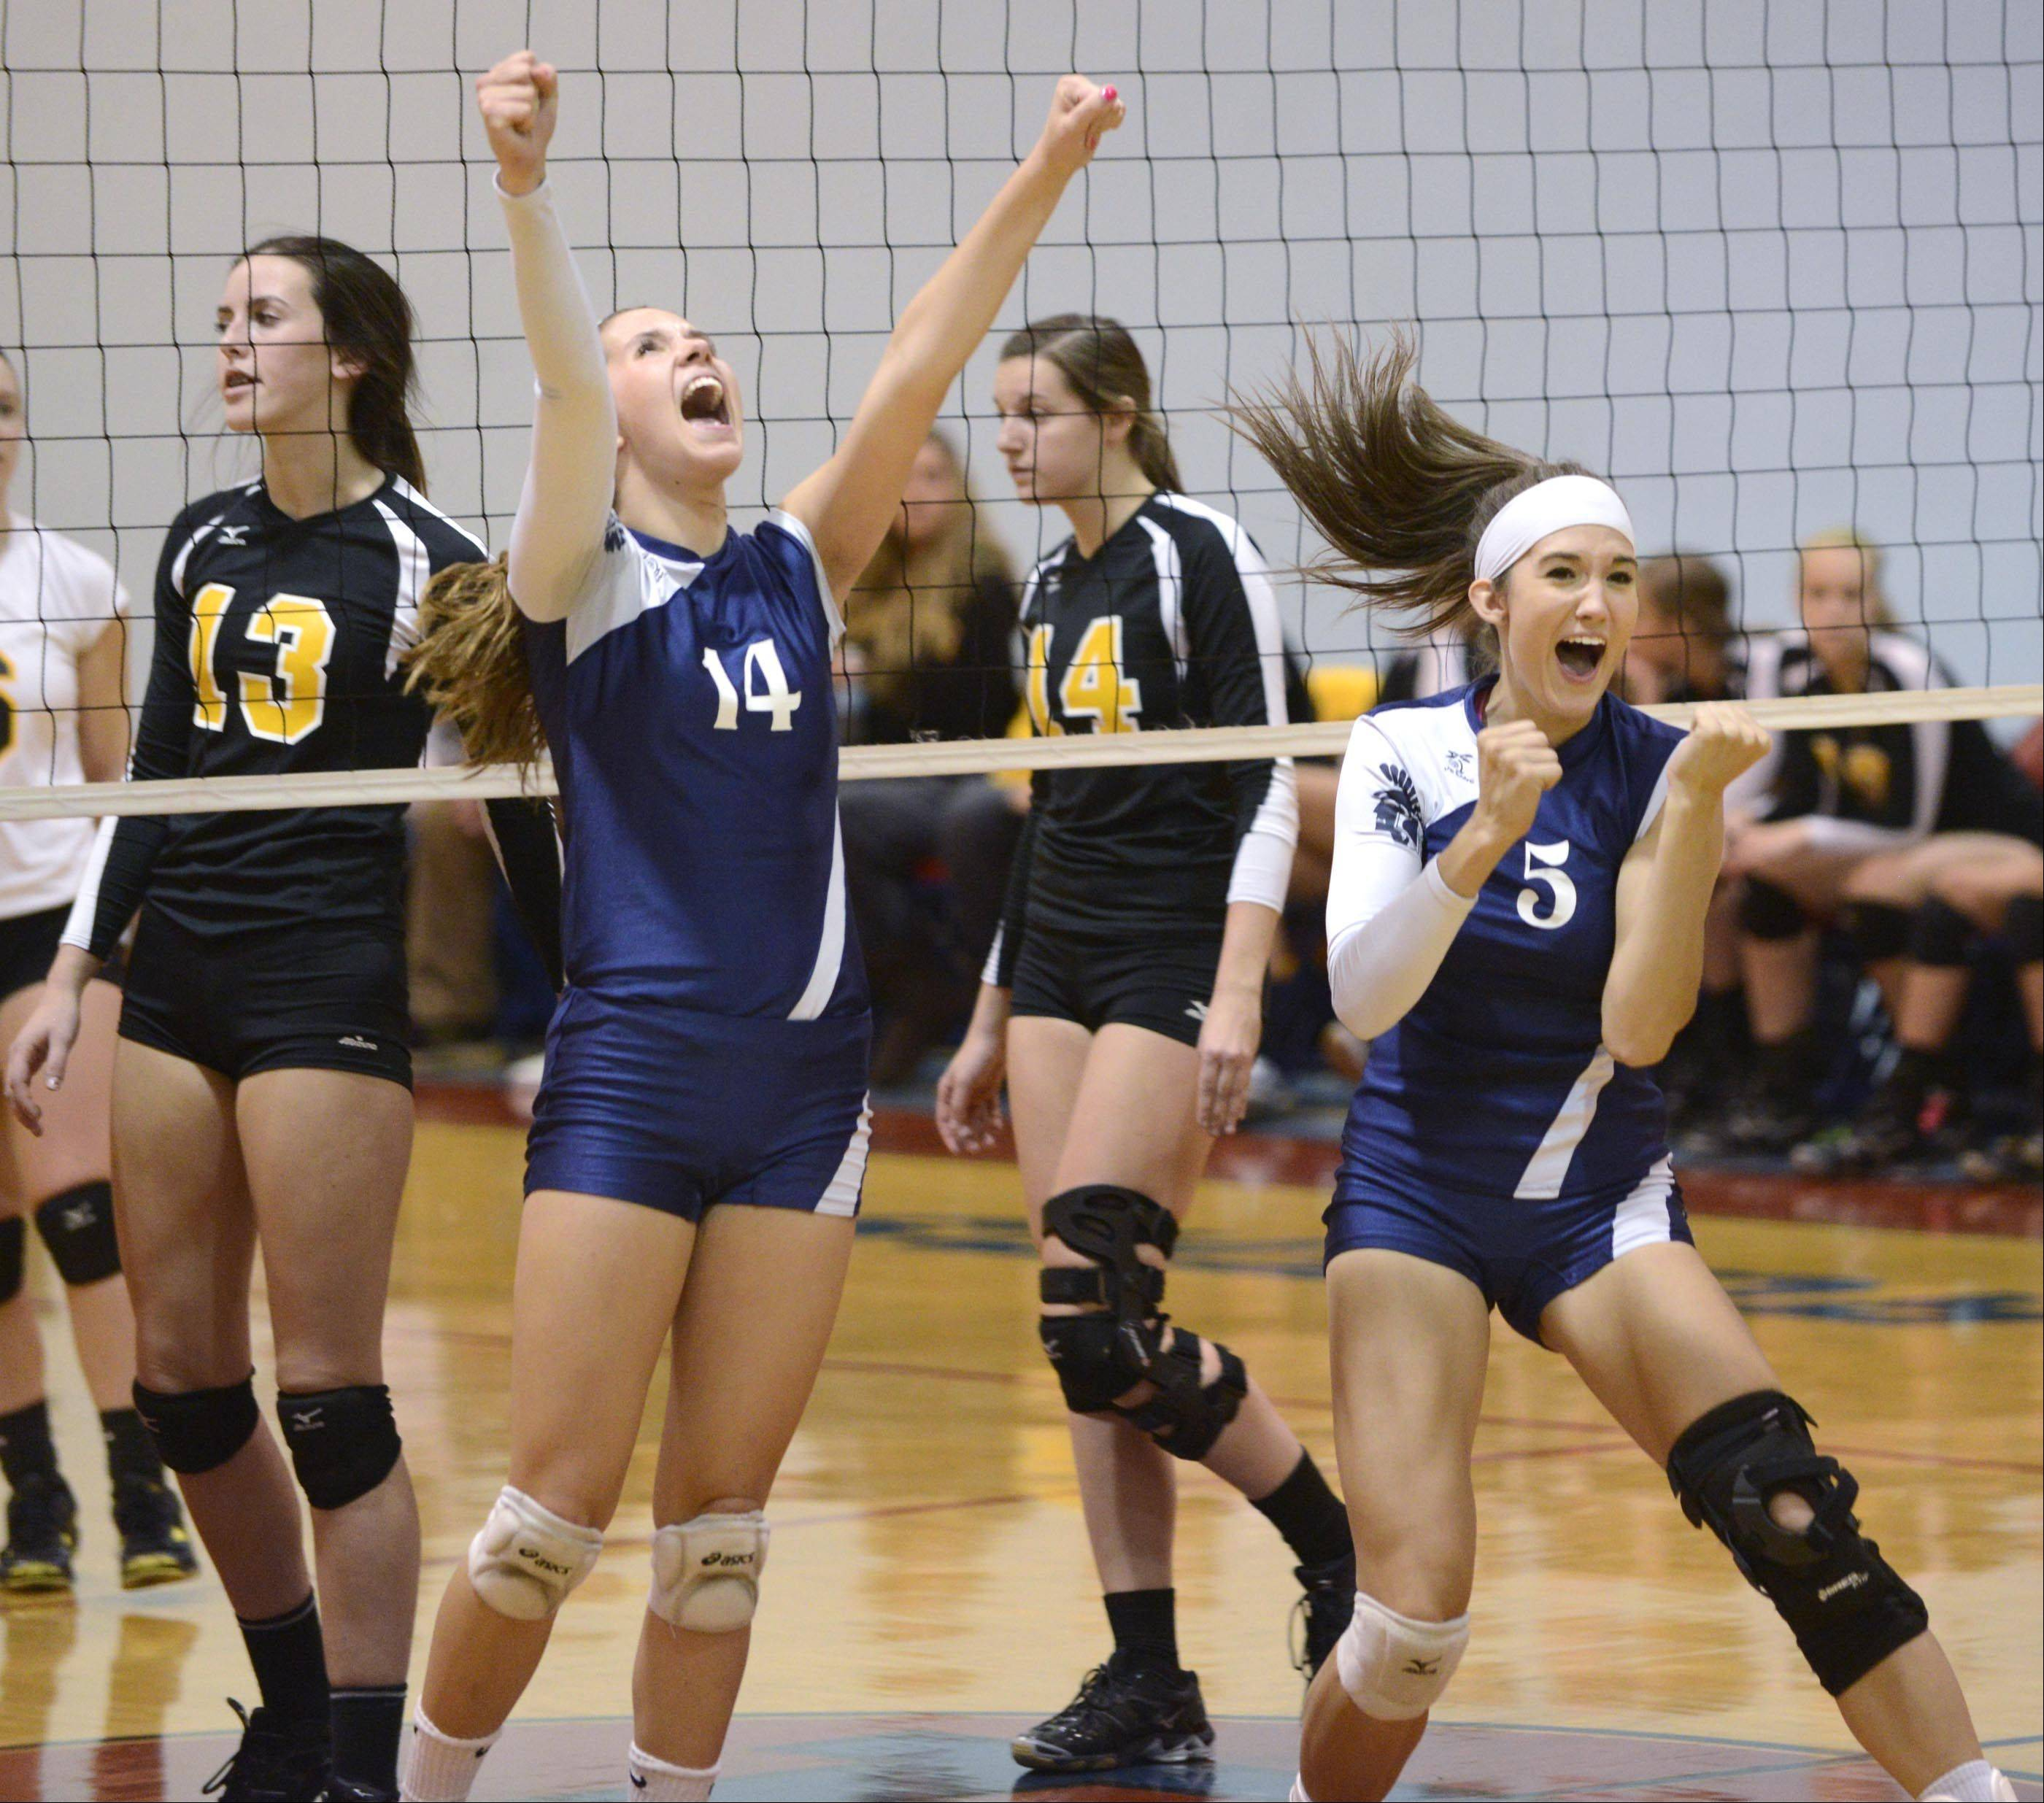 Cary-Grove's Sarah Graham and Kayli Trausch, right, the winning point as Jacobs' Katie Mahoney and Allie Campbell react on the other side of the net during Monday's volleyball match in Carpentersville.